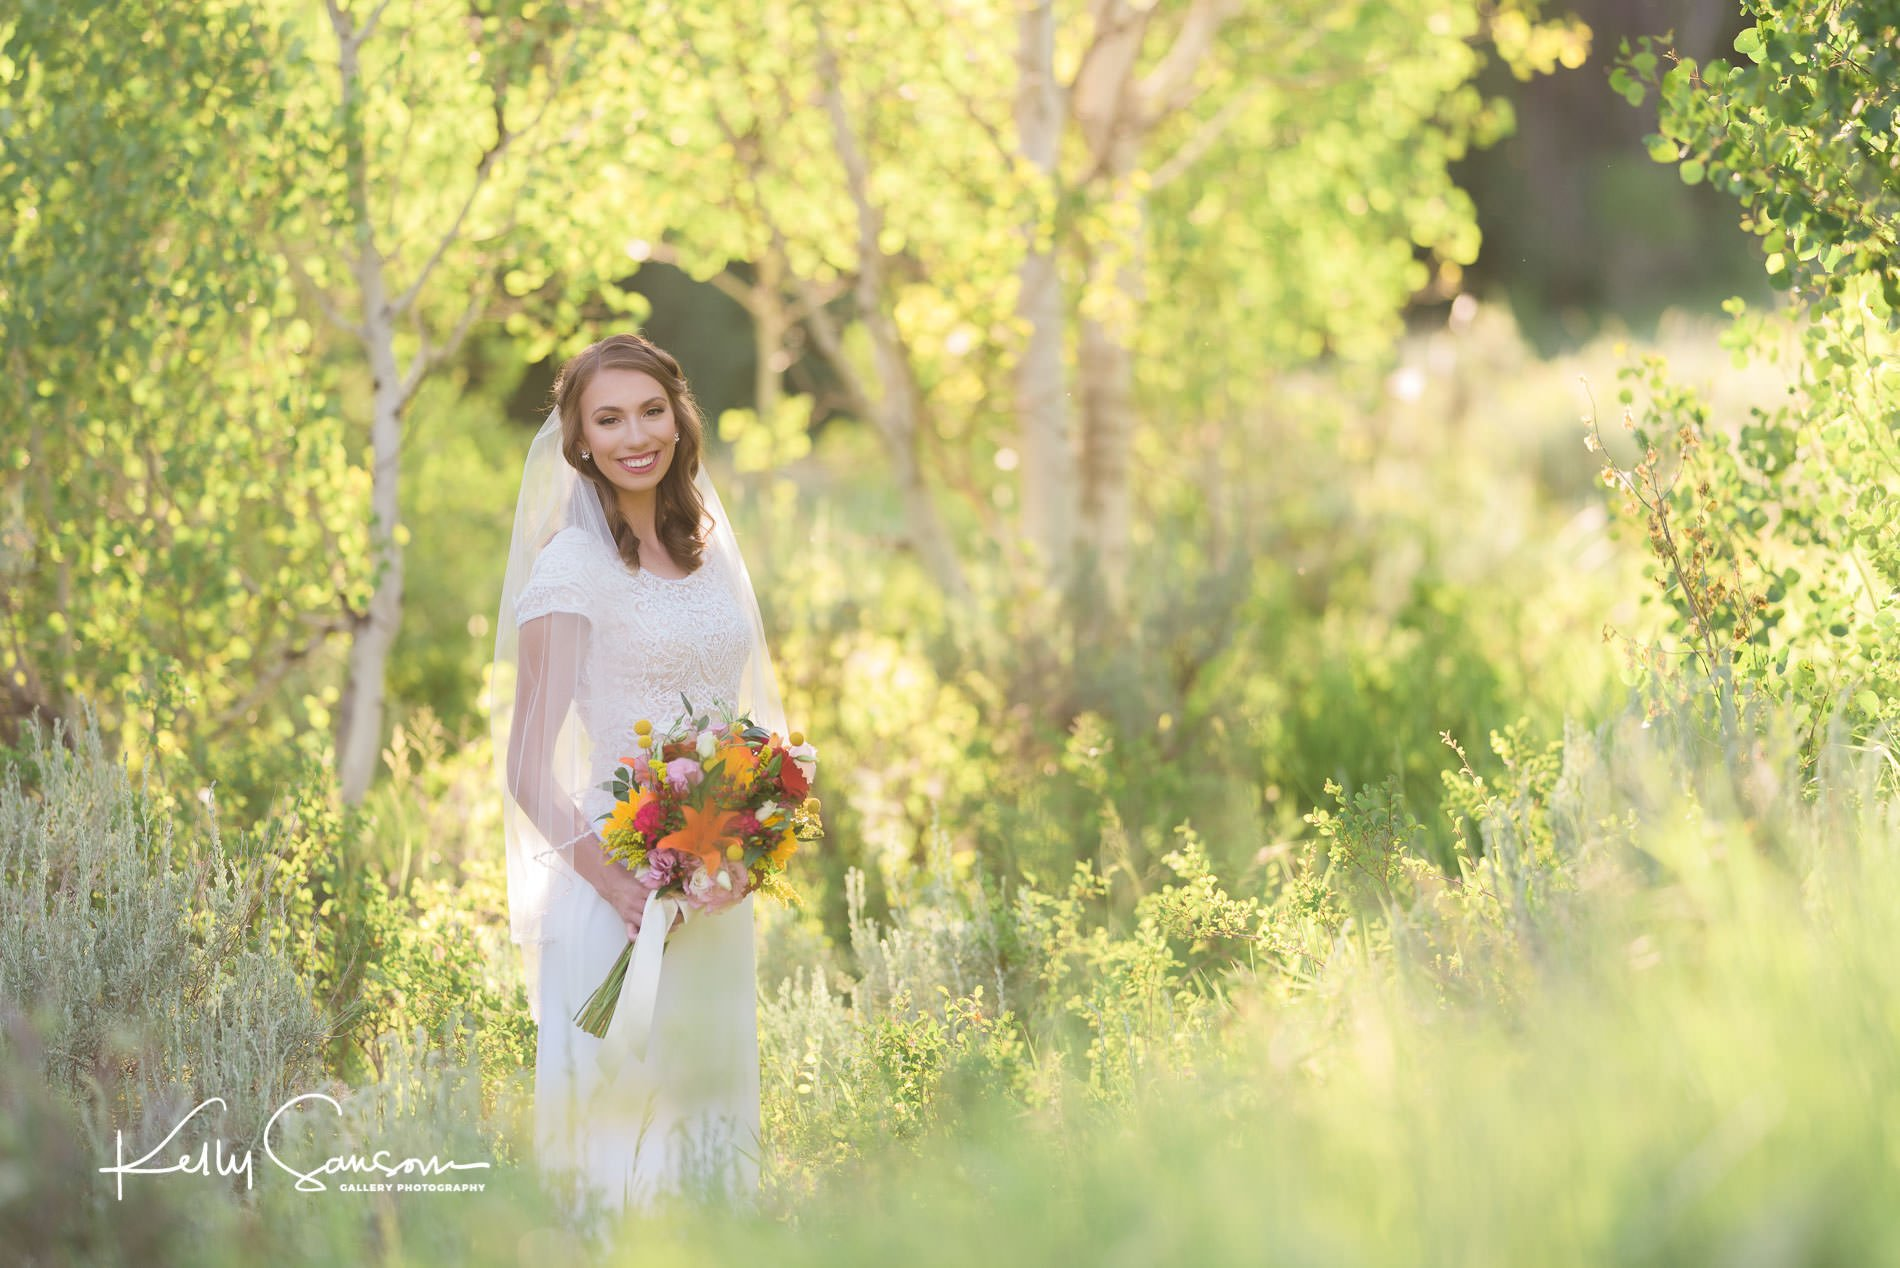 A bride standing smiling at the camera among fall leaves for Utah bridal photography.